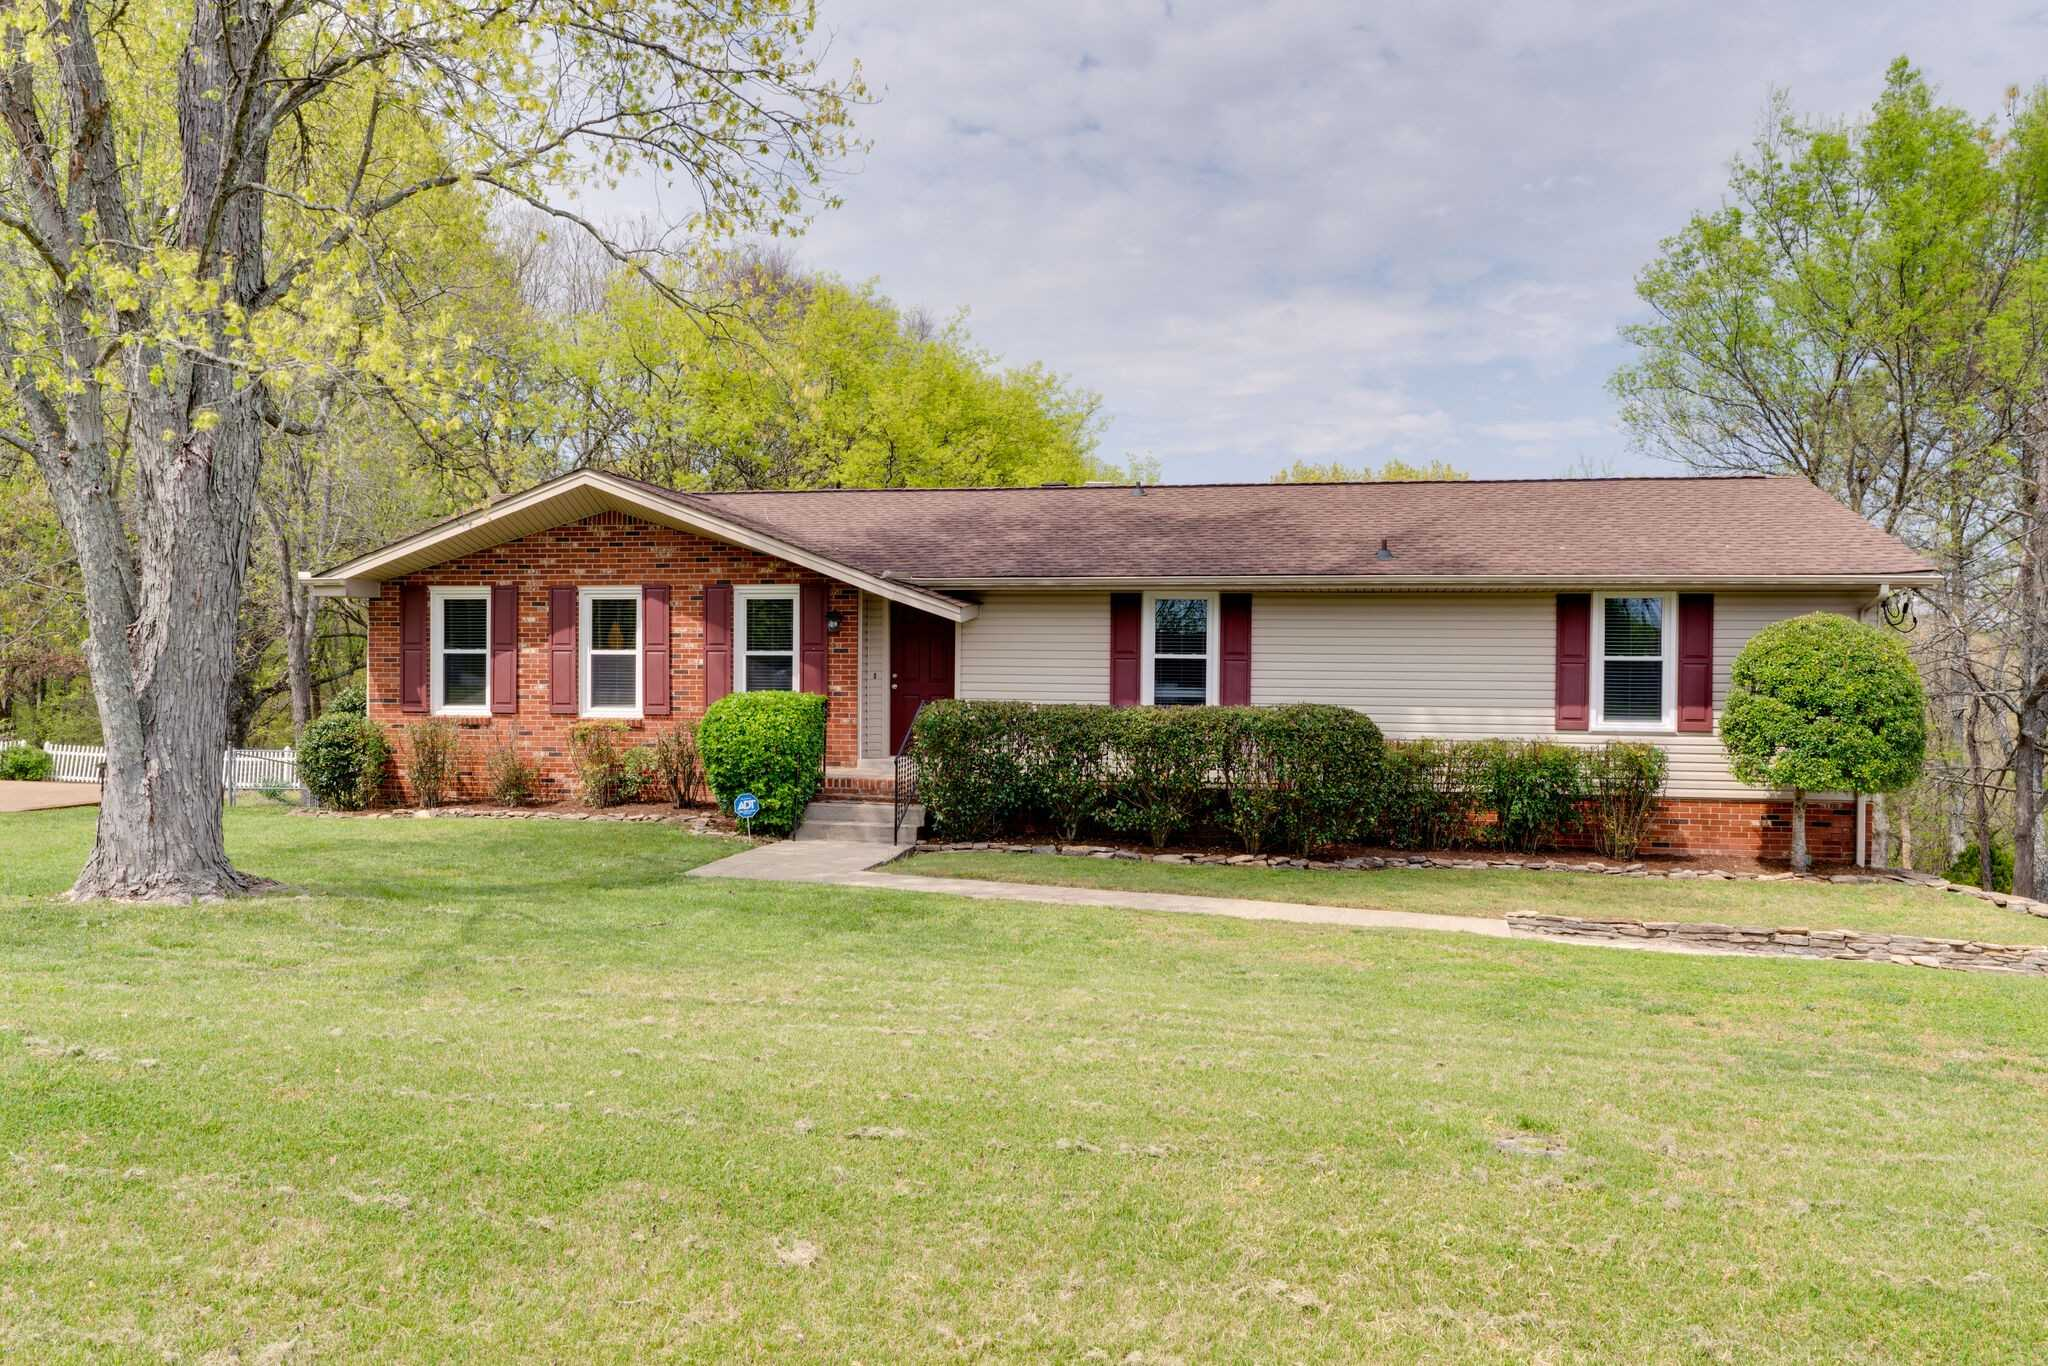 $379,900 - 4Br/3Ba -  for Sale in Connell Estates, Goodlettsville